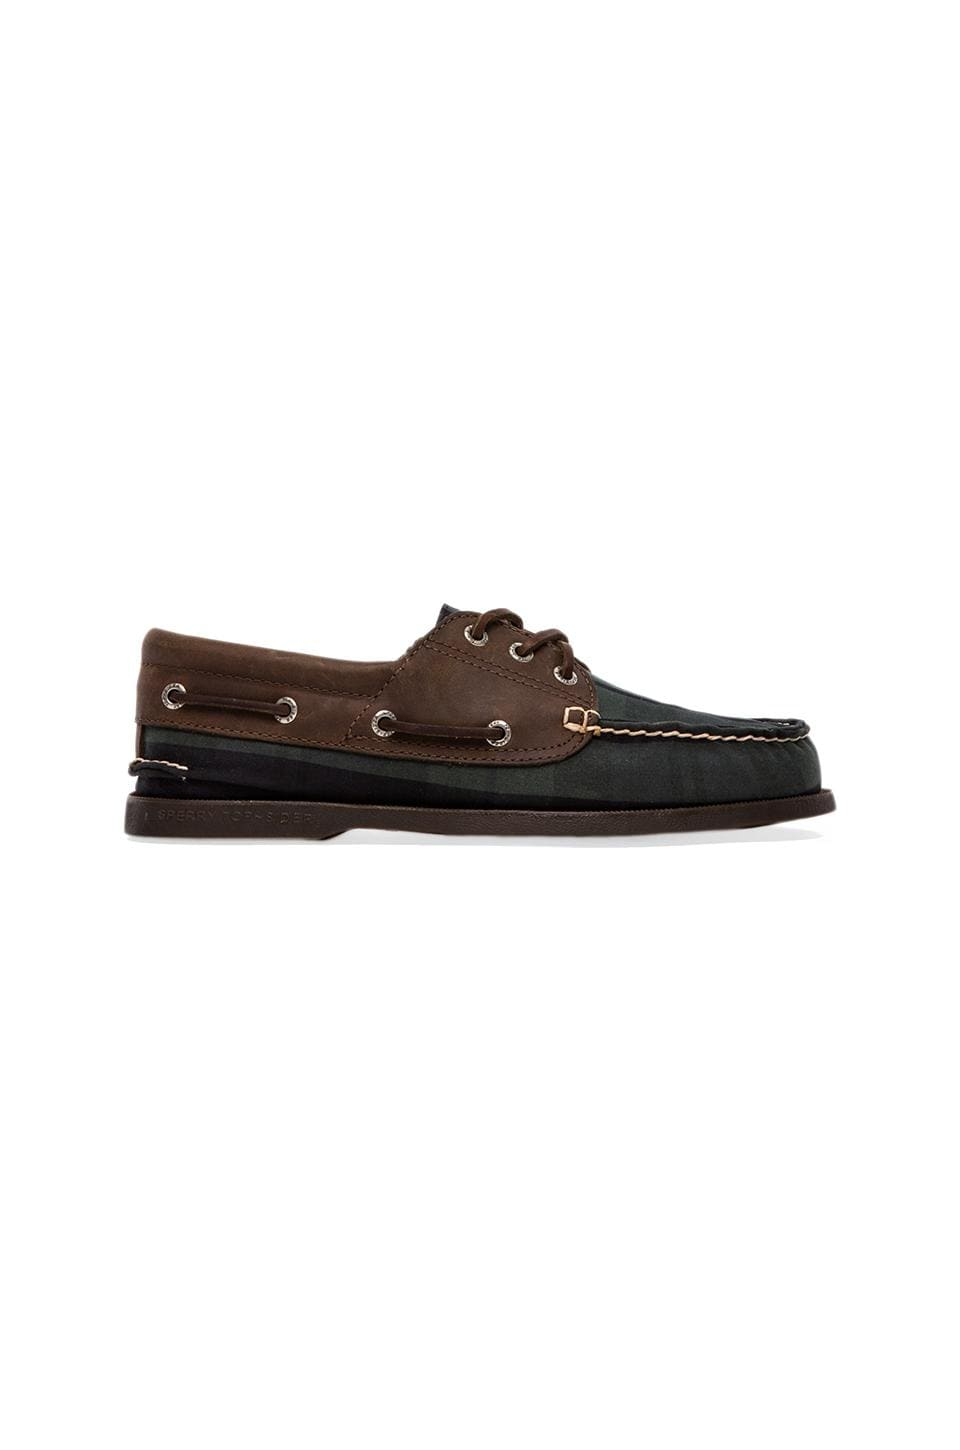 Sperry Top-Sider A/O 3-Eye Padded Collar in Blackwatch Oil Cloth